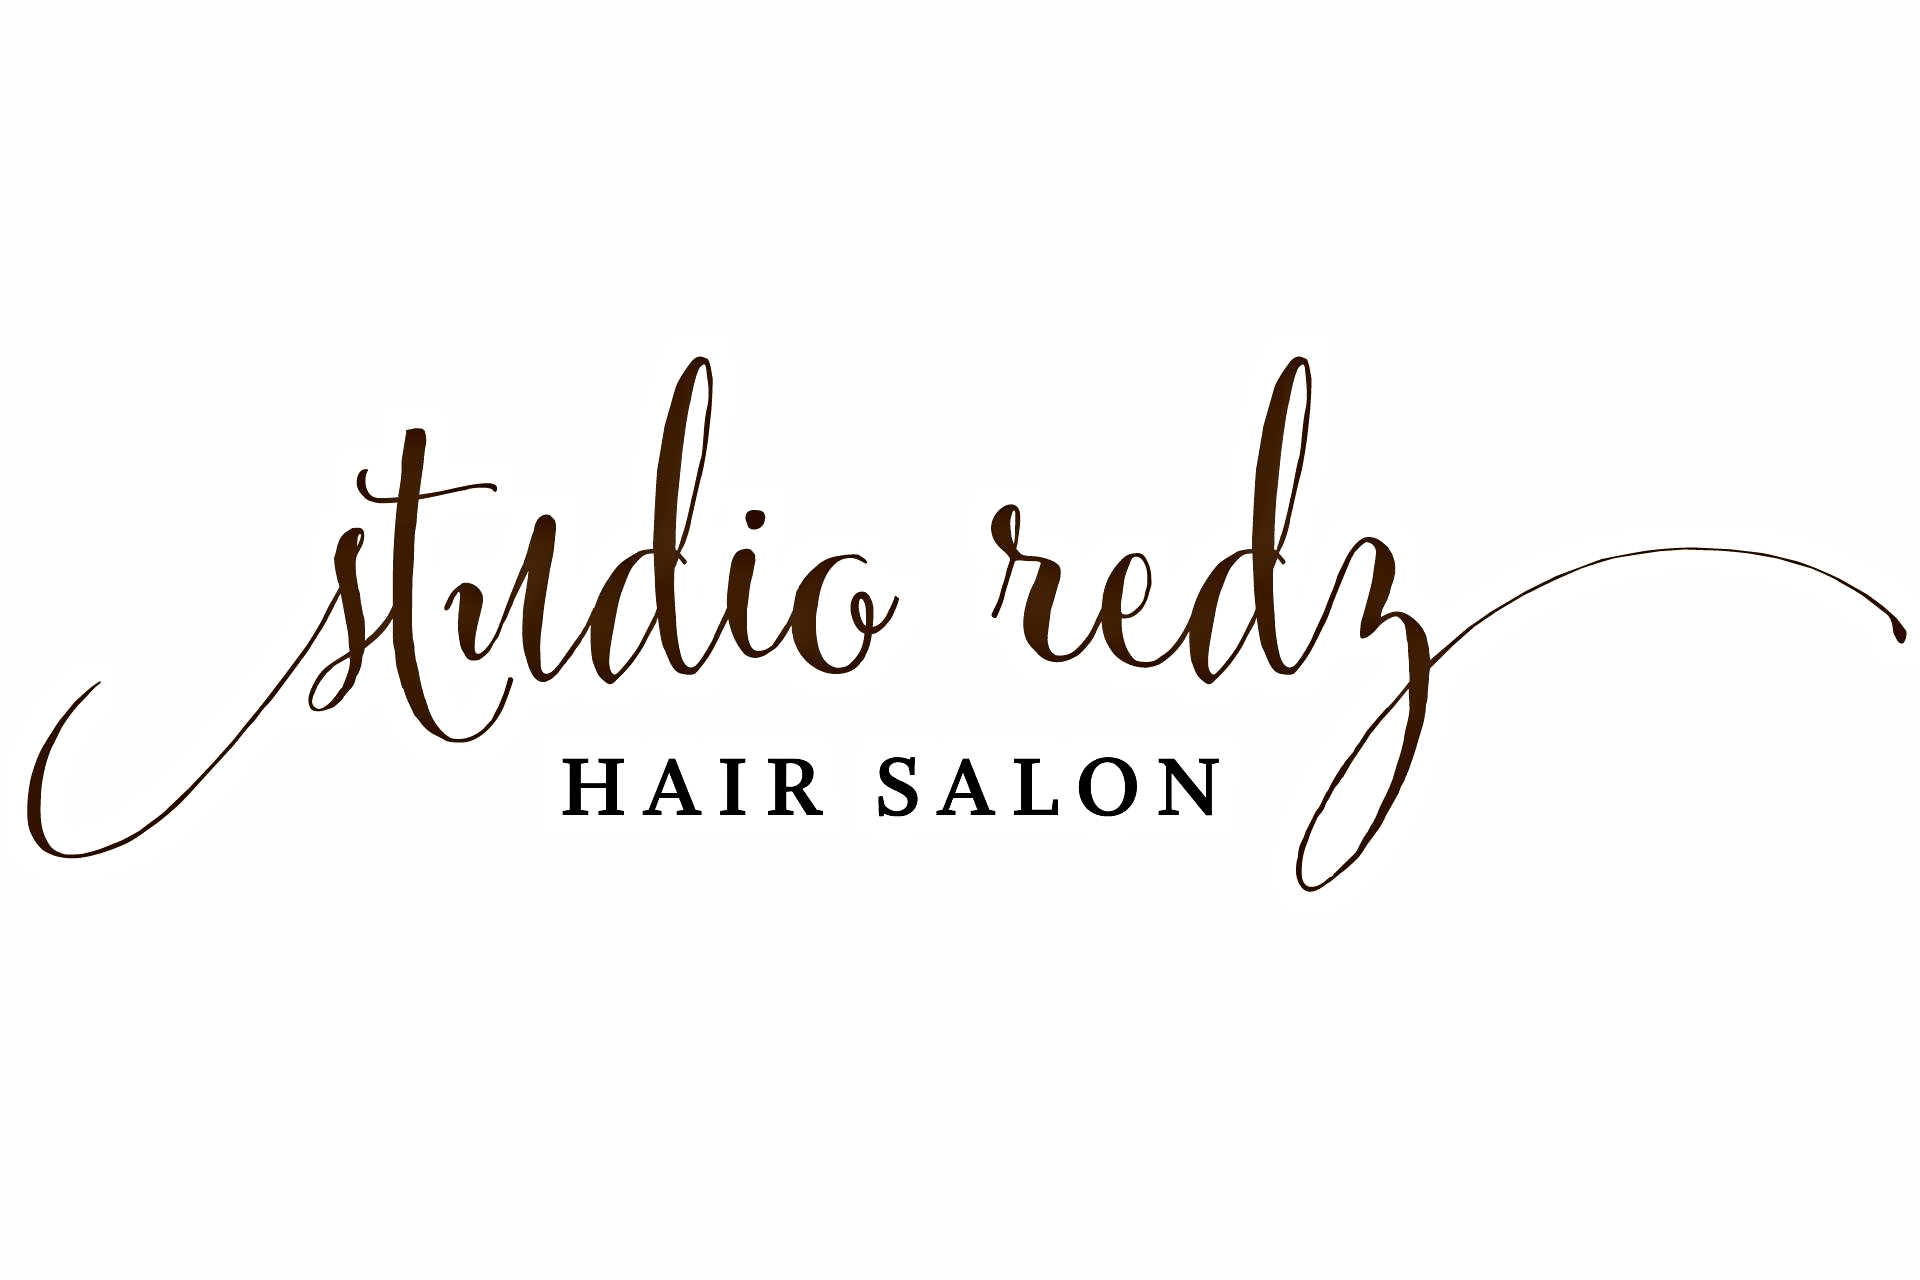 Studio redz hair salon in san francisco ca vagaro for 201 twiggs studio salon